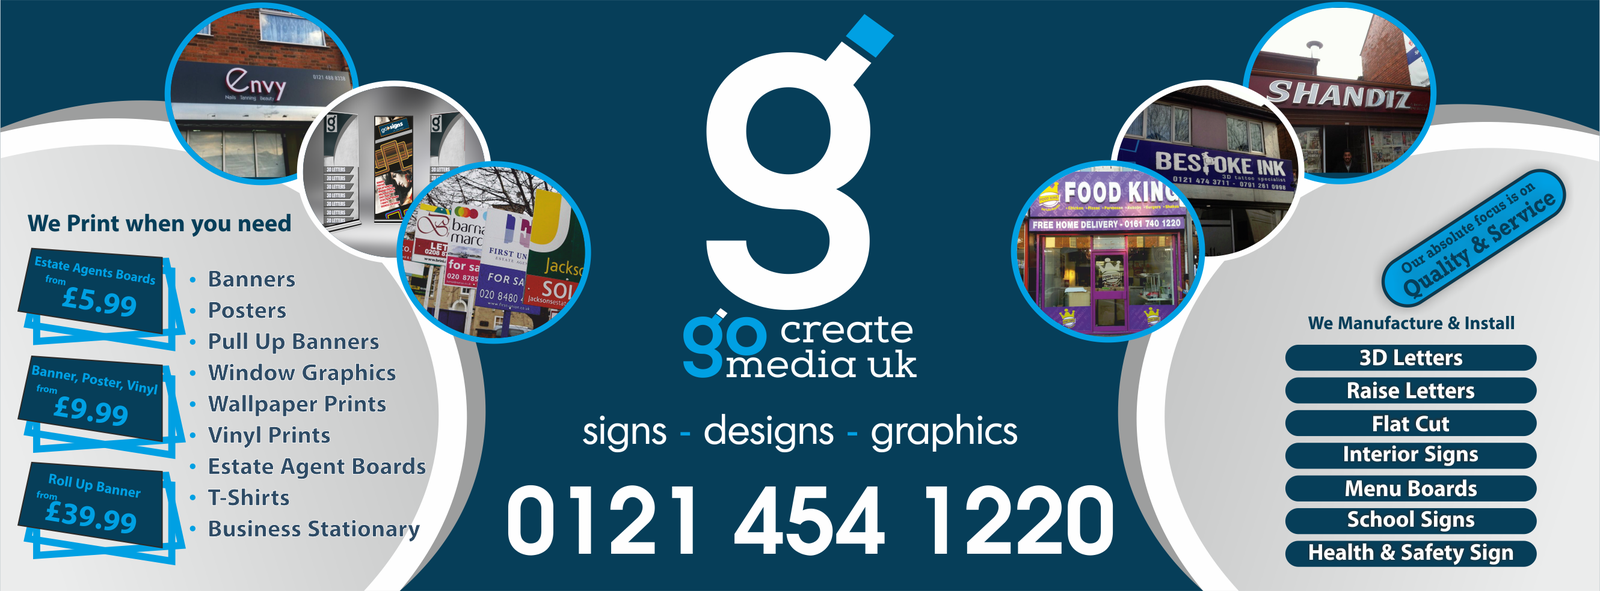 Go Create Media UK